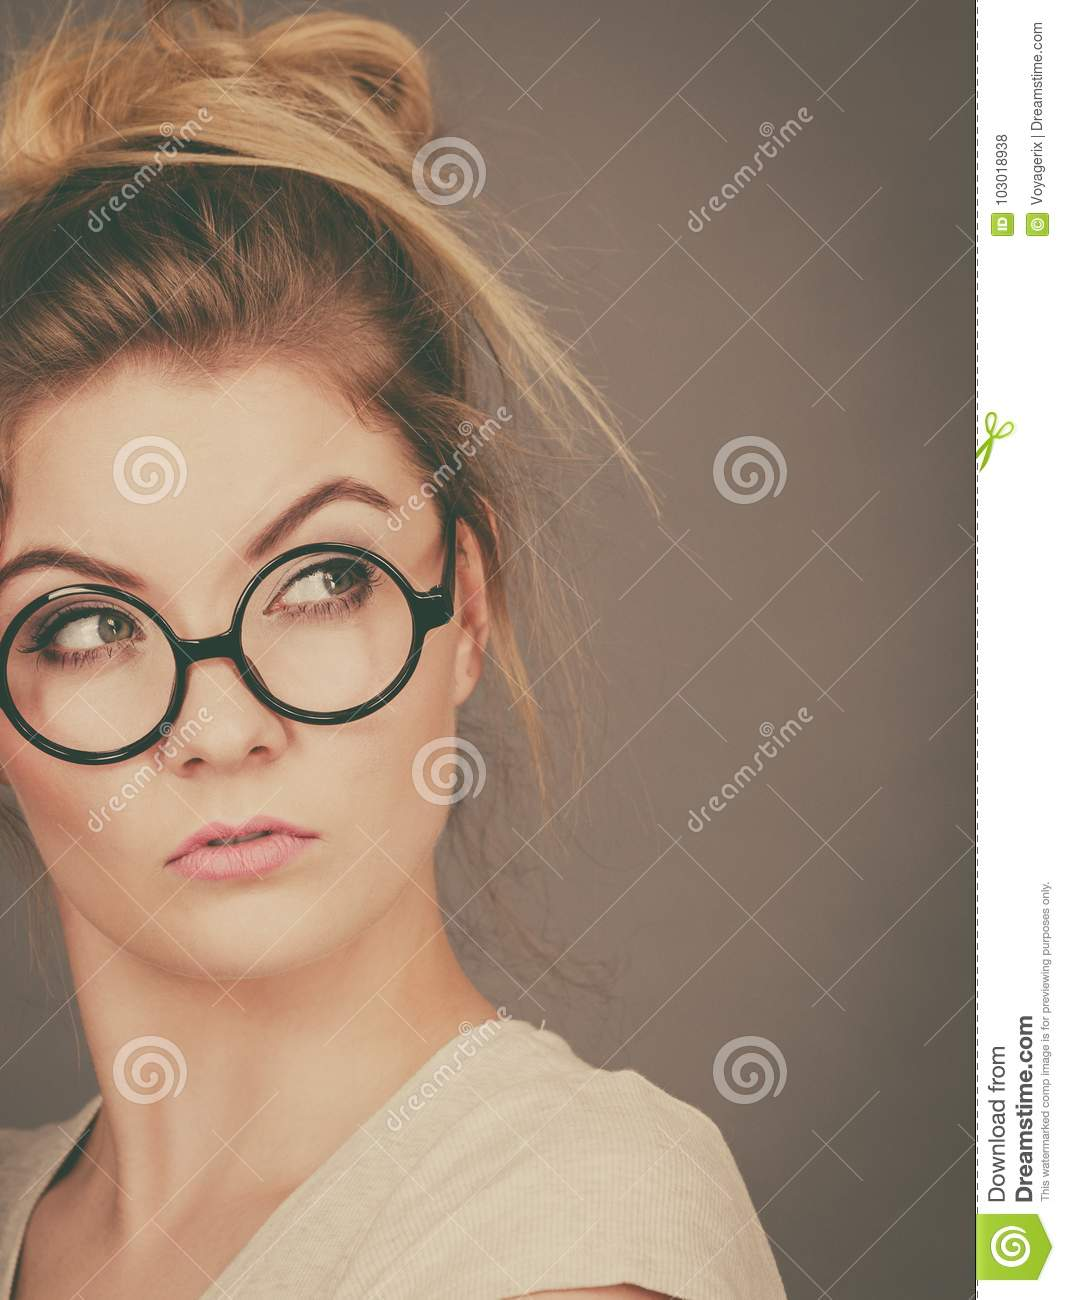 Only blonde teen nerdy glasses